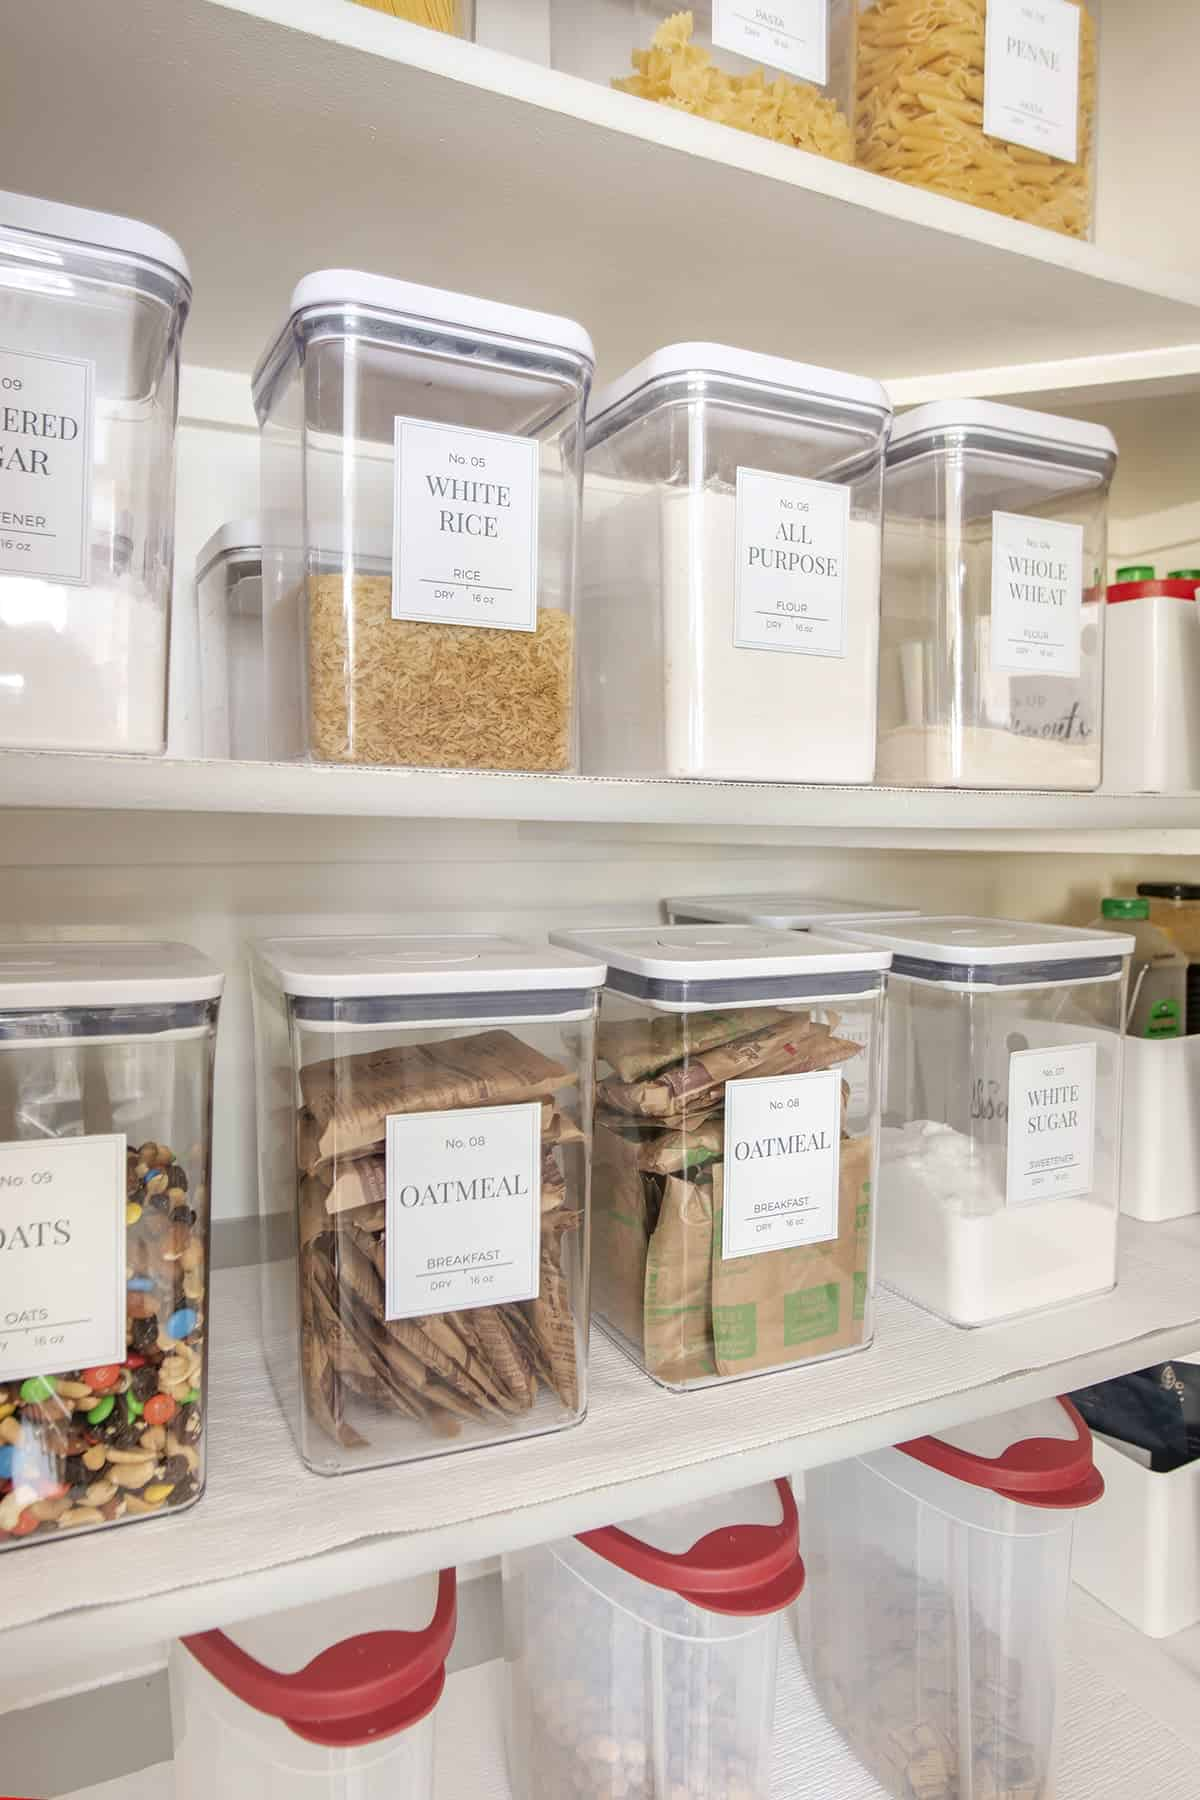 Clear labeled canisters keep staples like rice, flour and oatmeal orderly on pantry shelves. Clear plastic pour bins keep cereal fresh on the bottom shelf.